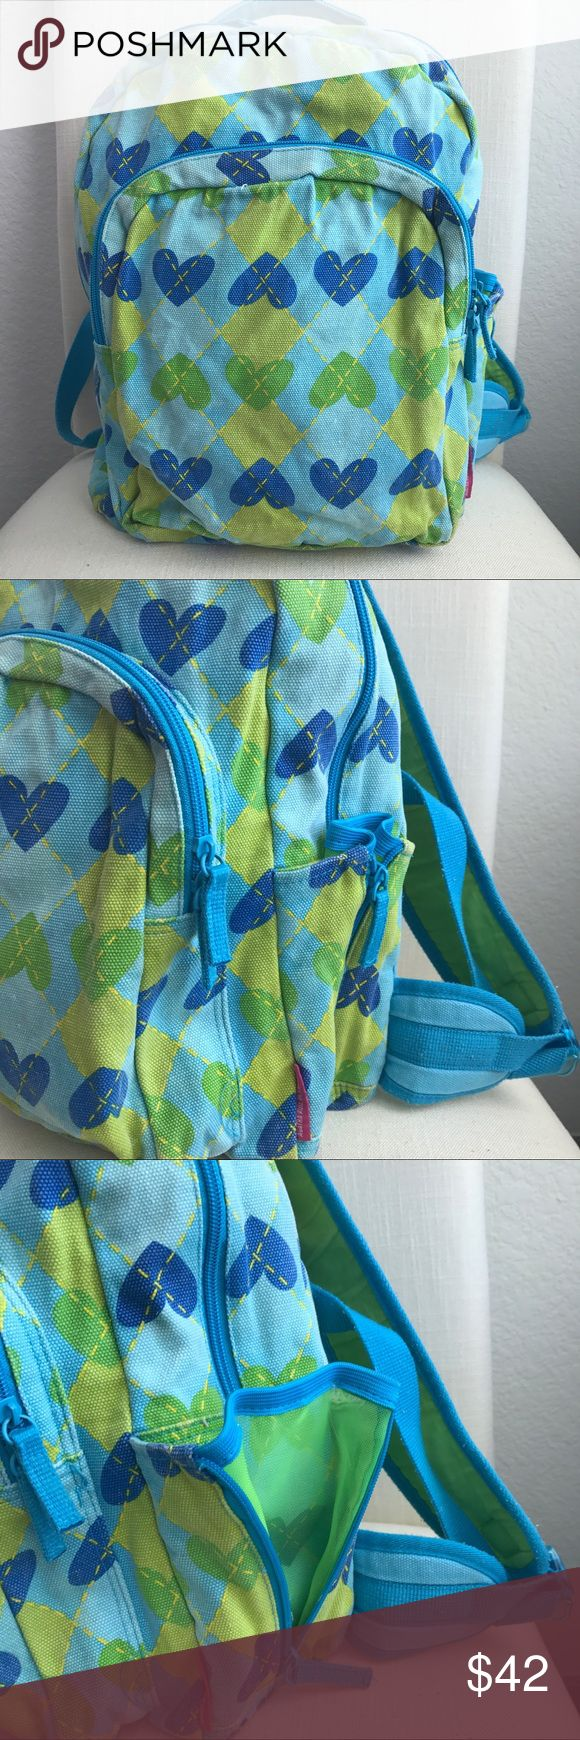 AGATHA RUIZ DE LA PRADA HEARTS BACKPACK Beautiful soft jean fabric, designer from Spain (Agatha Ruiz de la Prada), excellent used condition. Adjustable straps, padded back and straps. Can be used to stack on a suit case. Pocket in front and on the side. Jean fabric super sturdy. Color: faded blue and green. 💗Condition: Used condition, No flaws noted, no rips or holes. Noted two small stains in last picture barely noticeable.  💗No trades, No returns. Shipping next day 💗All transactions…